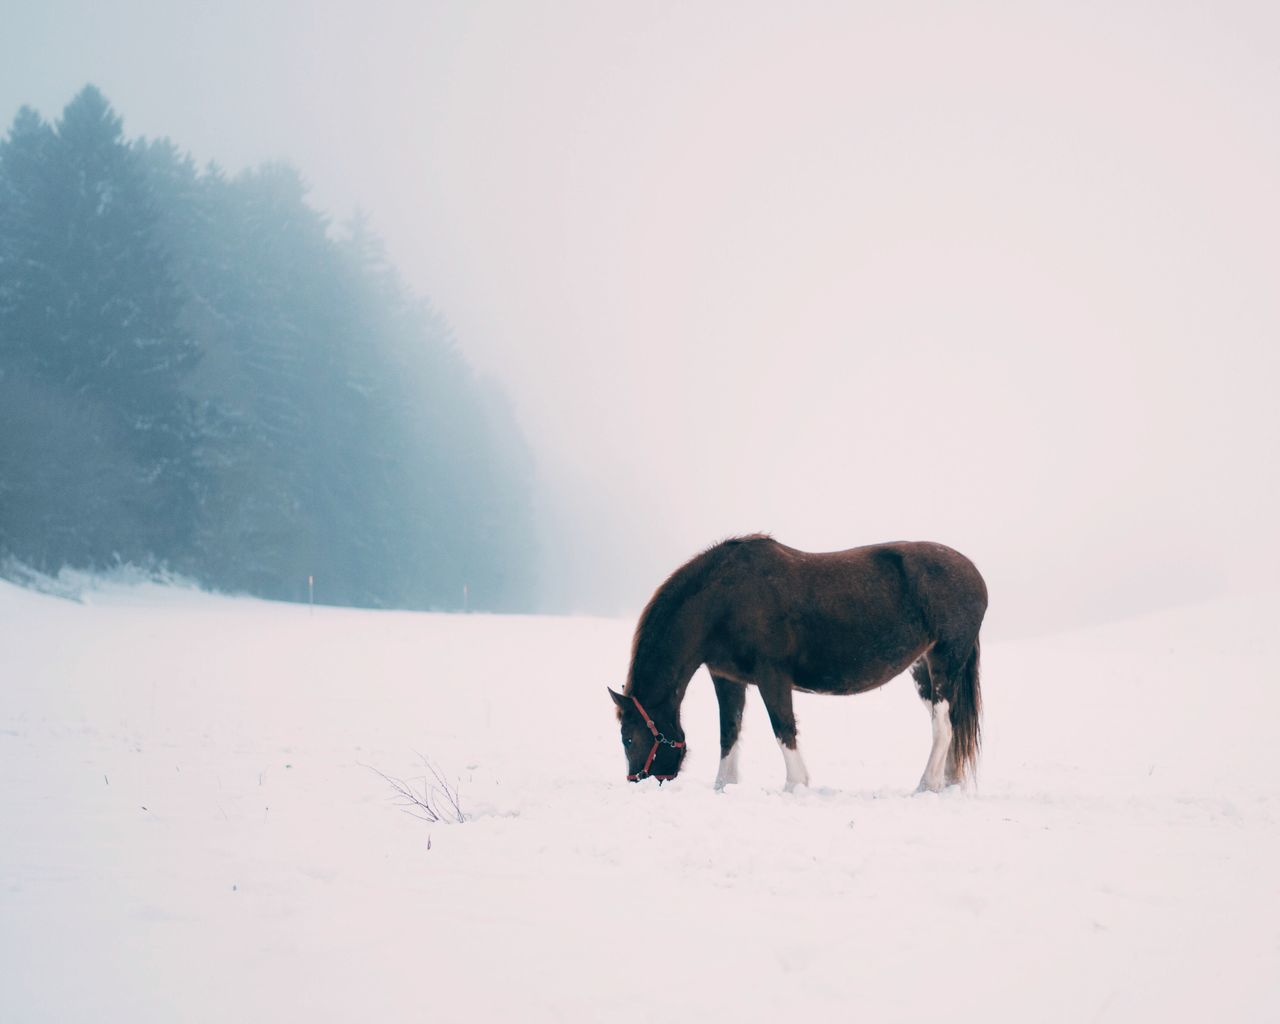 Beautiful stock photos of winter, snow, weather, animal themes